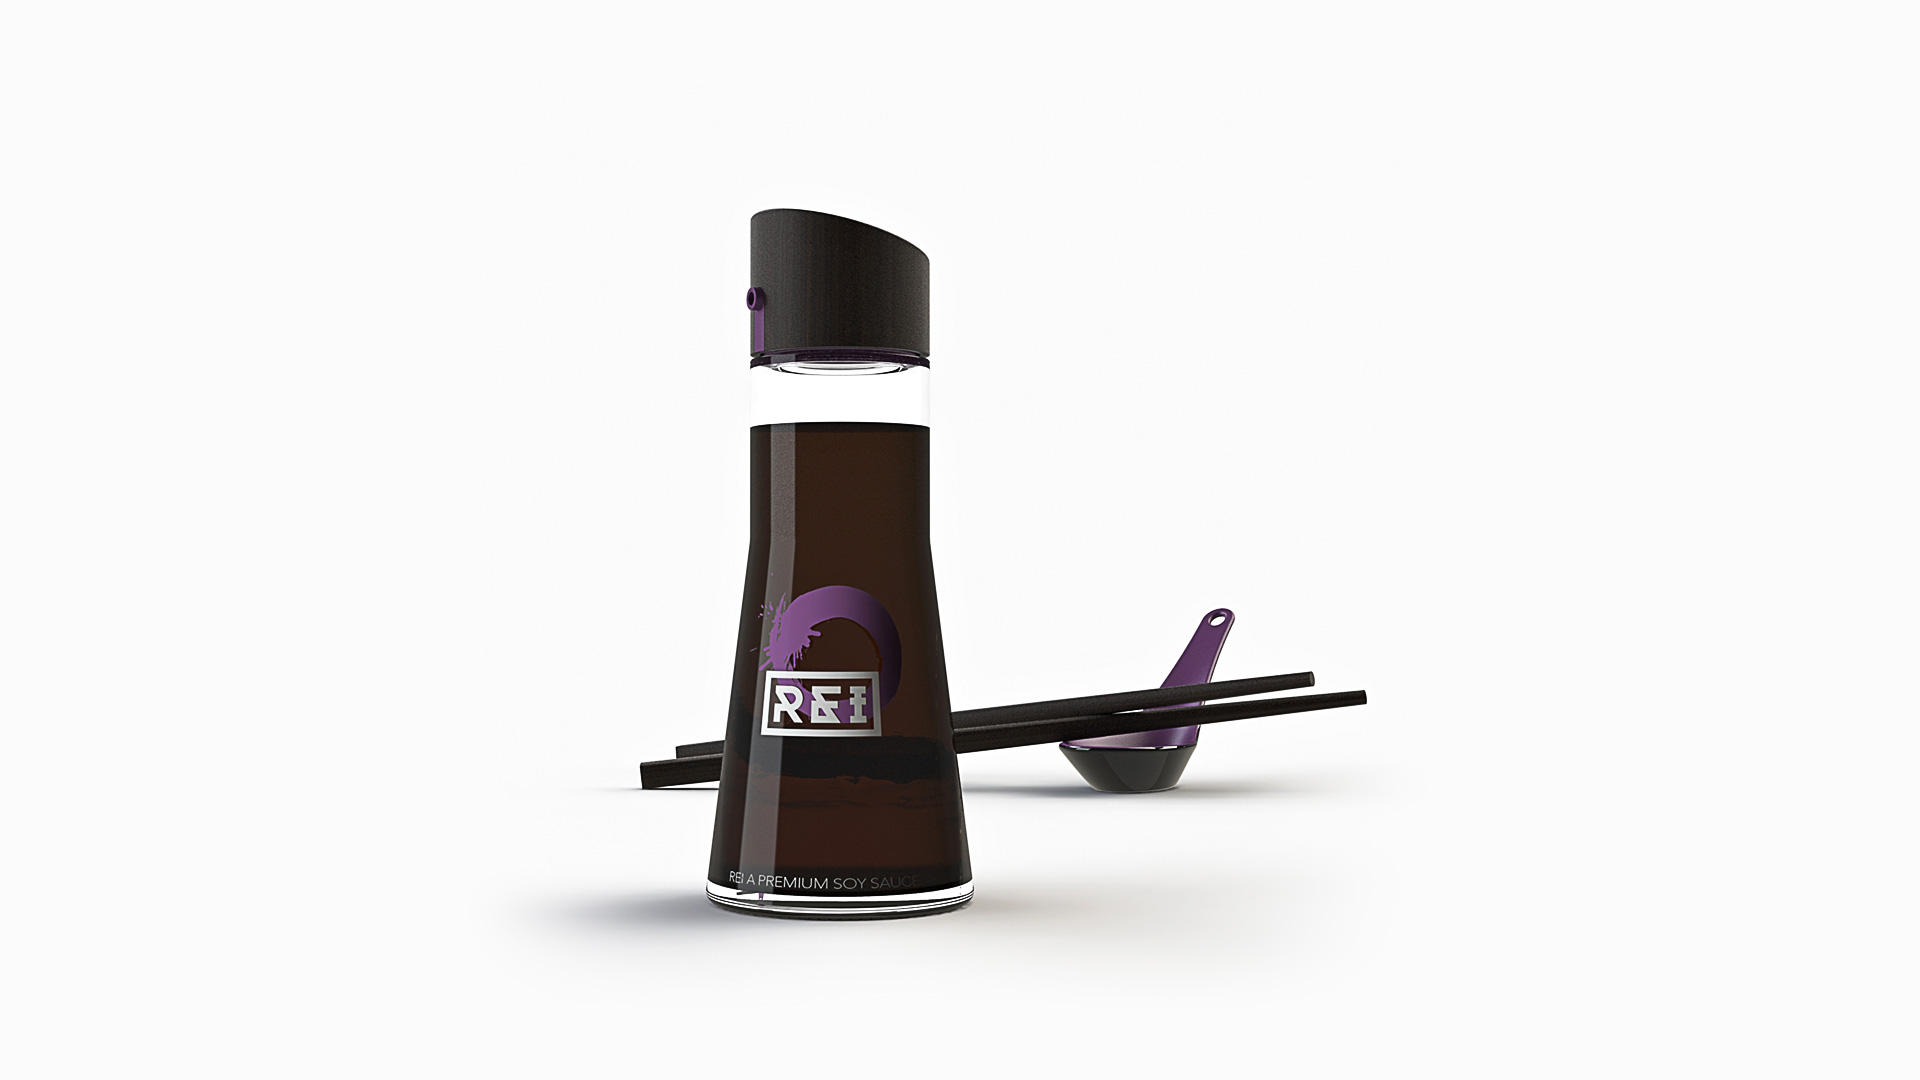 rei soy sauce packaging design